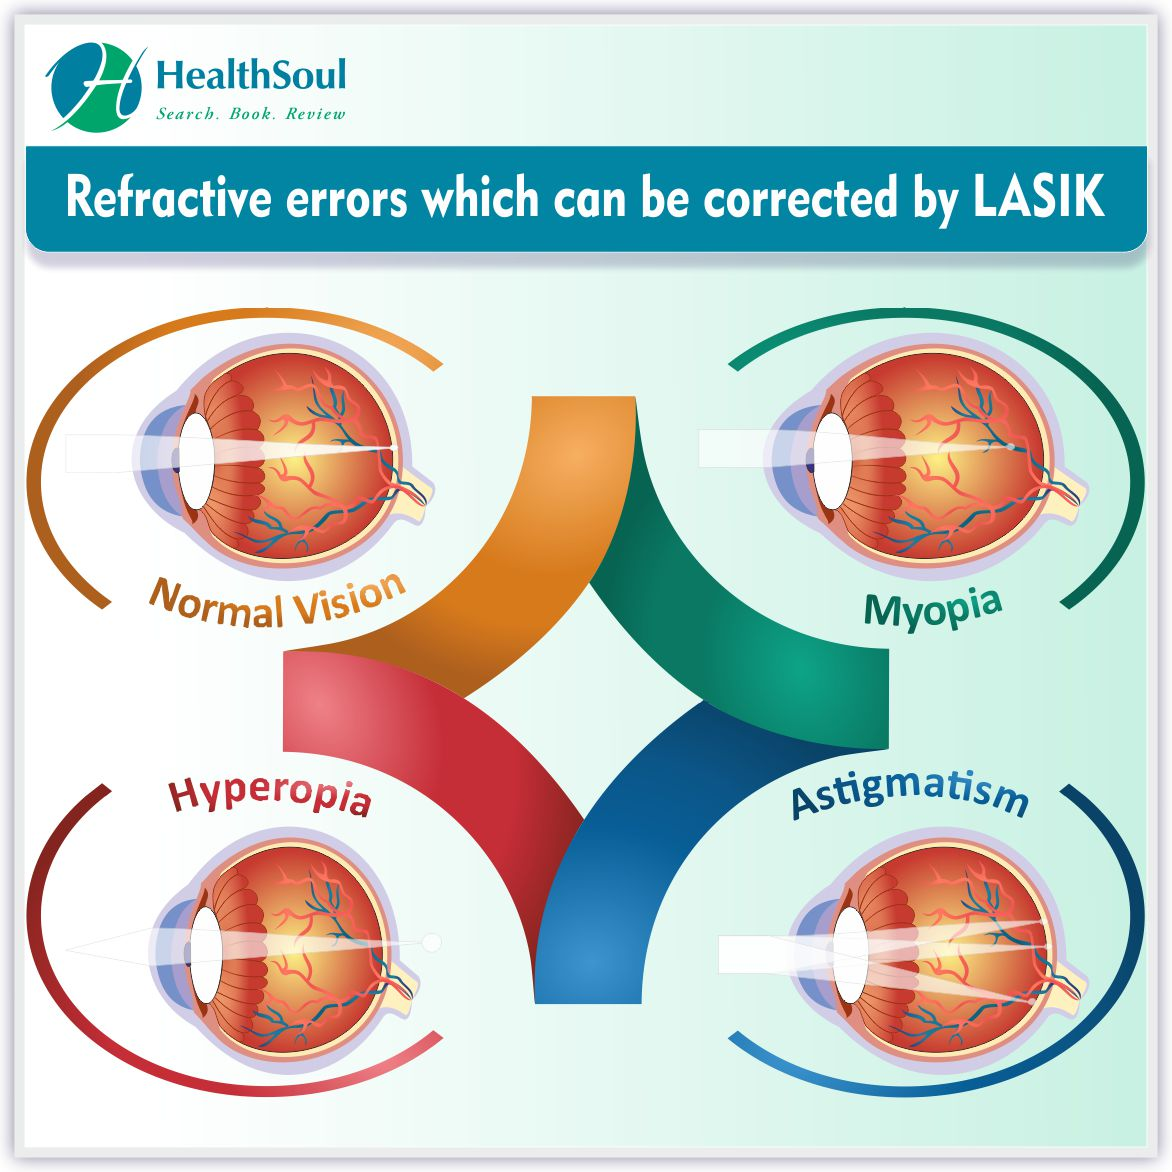 Refractive errors whiich can be corrected by LASIK | HealthSoul